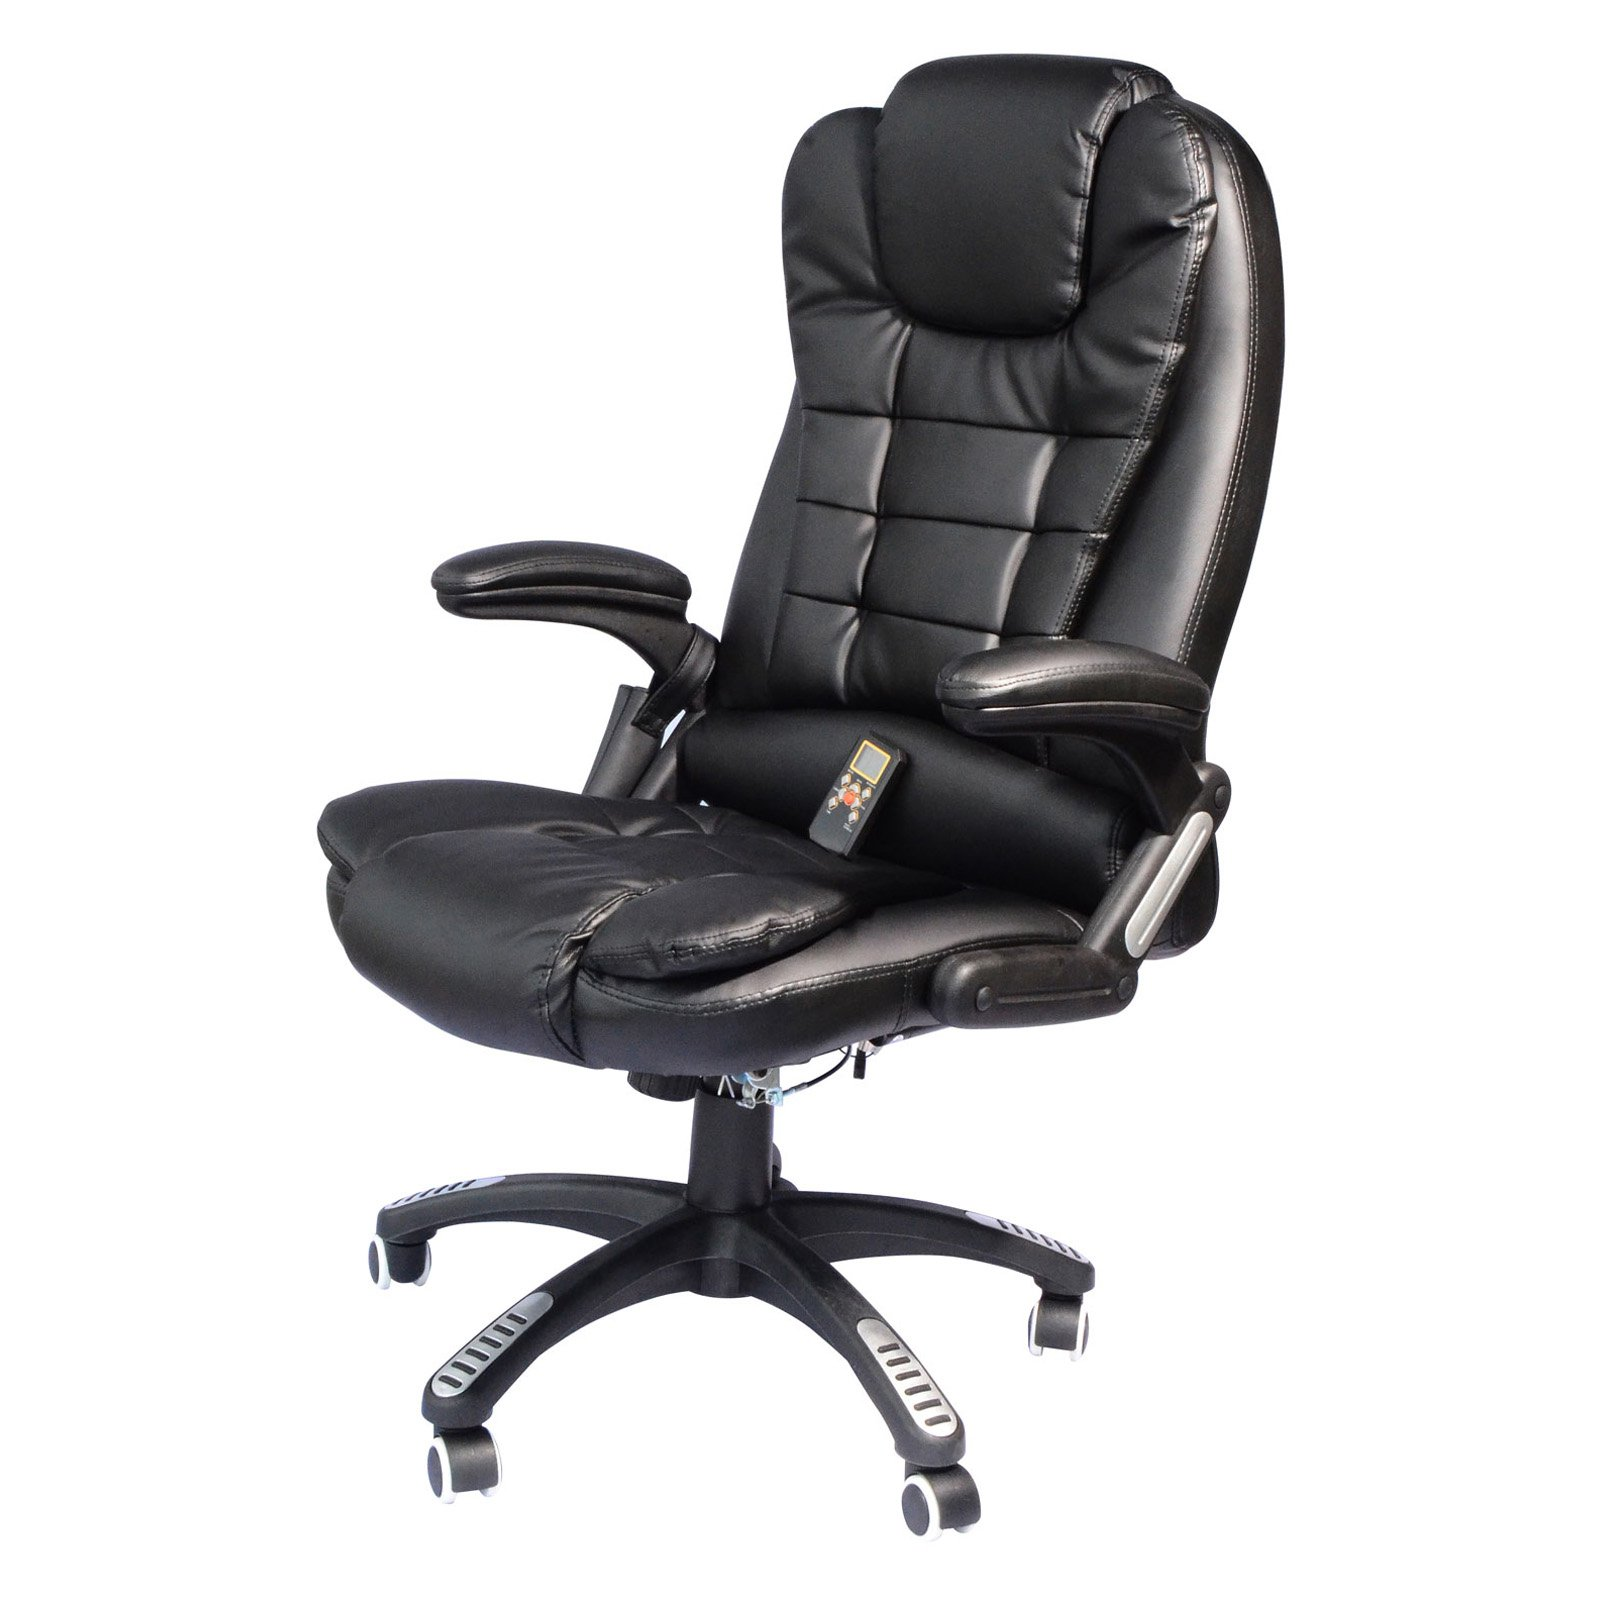 desk chair at walmart sure fit covers bed bath and beyond homcom executive ergonomic pu leather heated vibrating massage office com